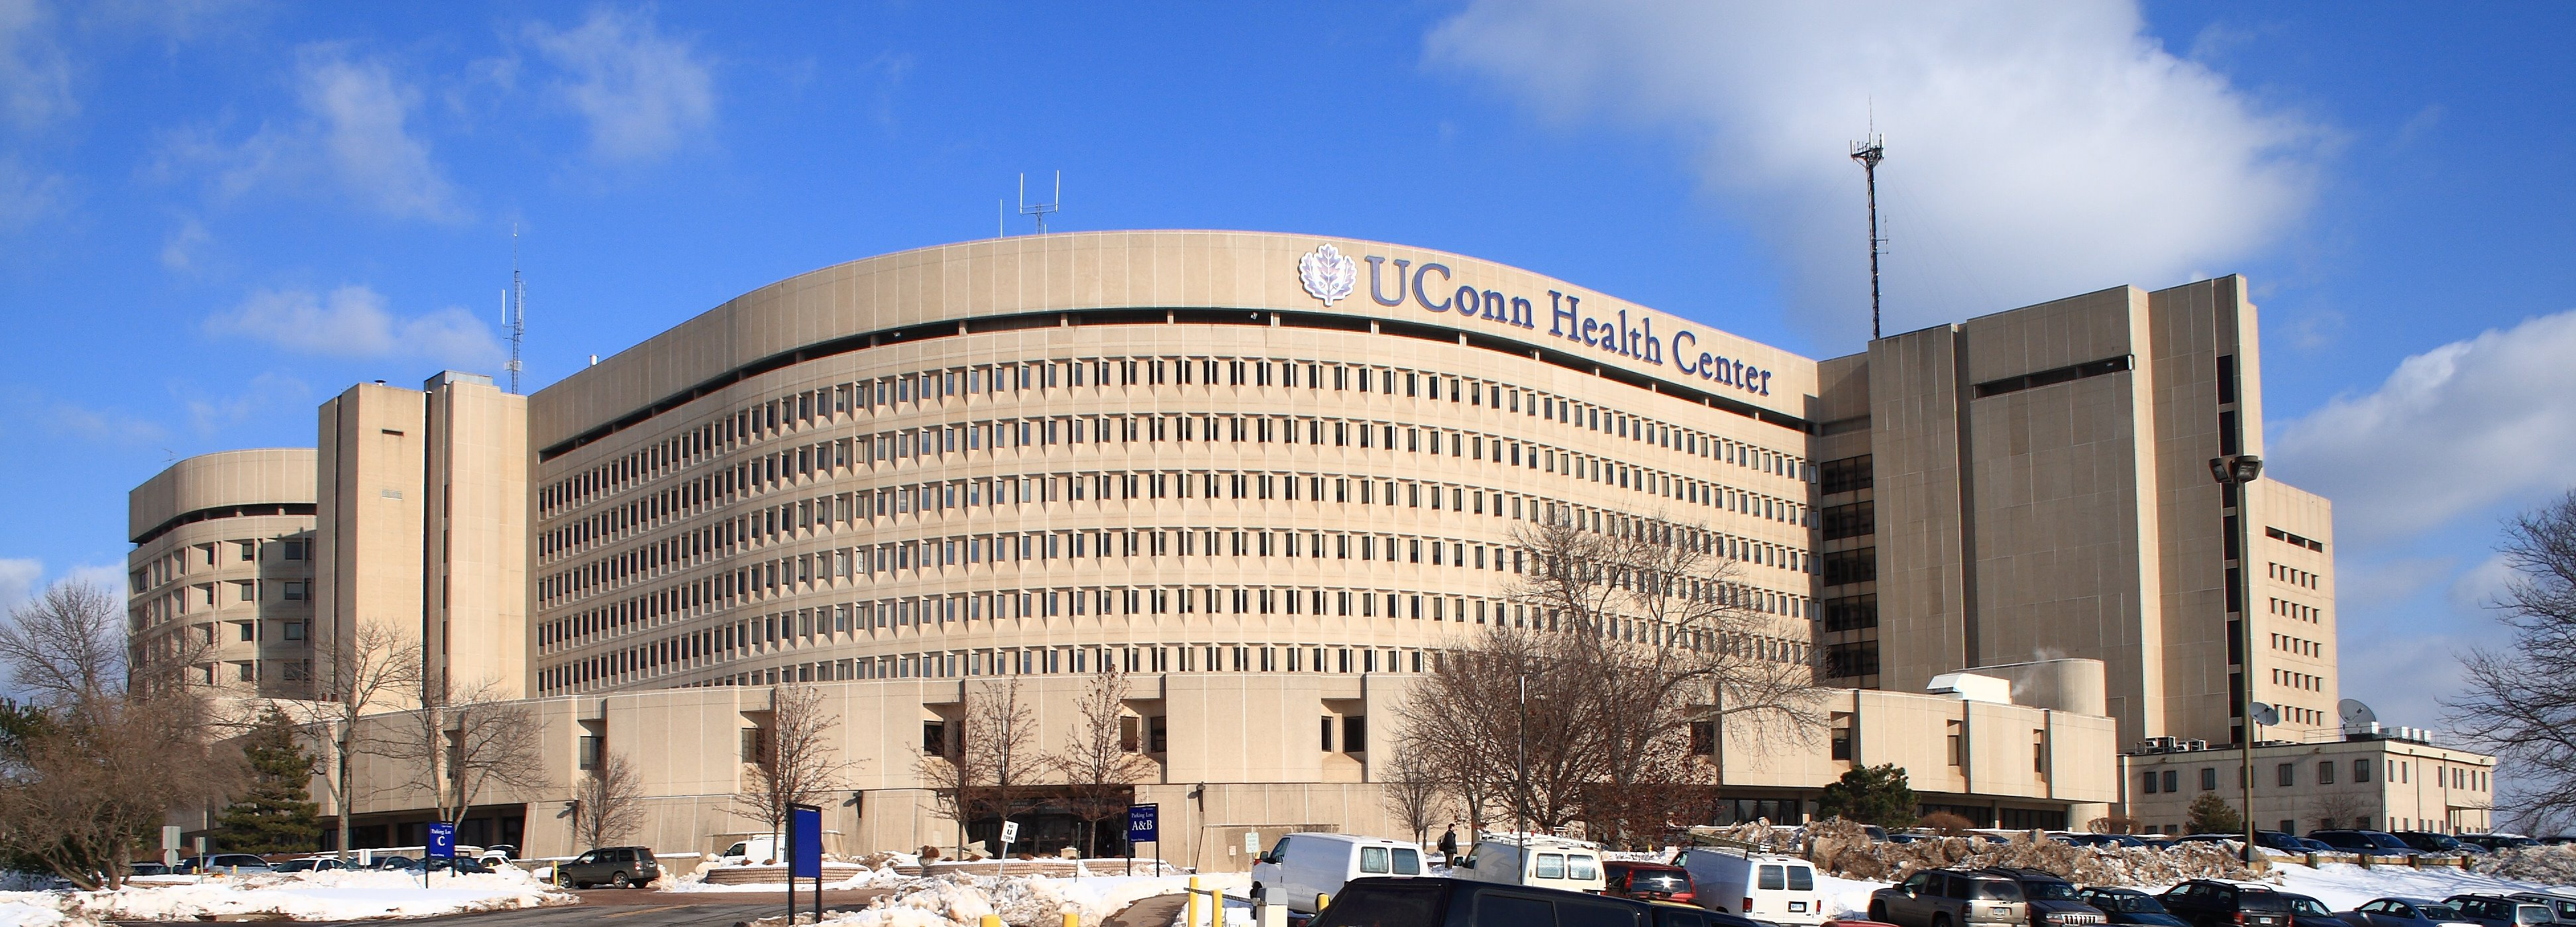 "Auditors highlight ""potential conflict of interest"" surrounding UConn Health Center CEO"